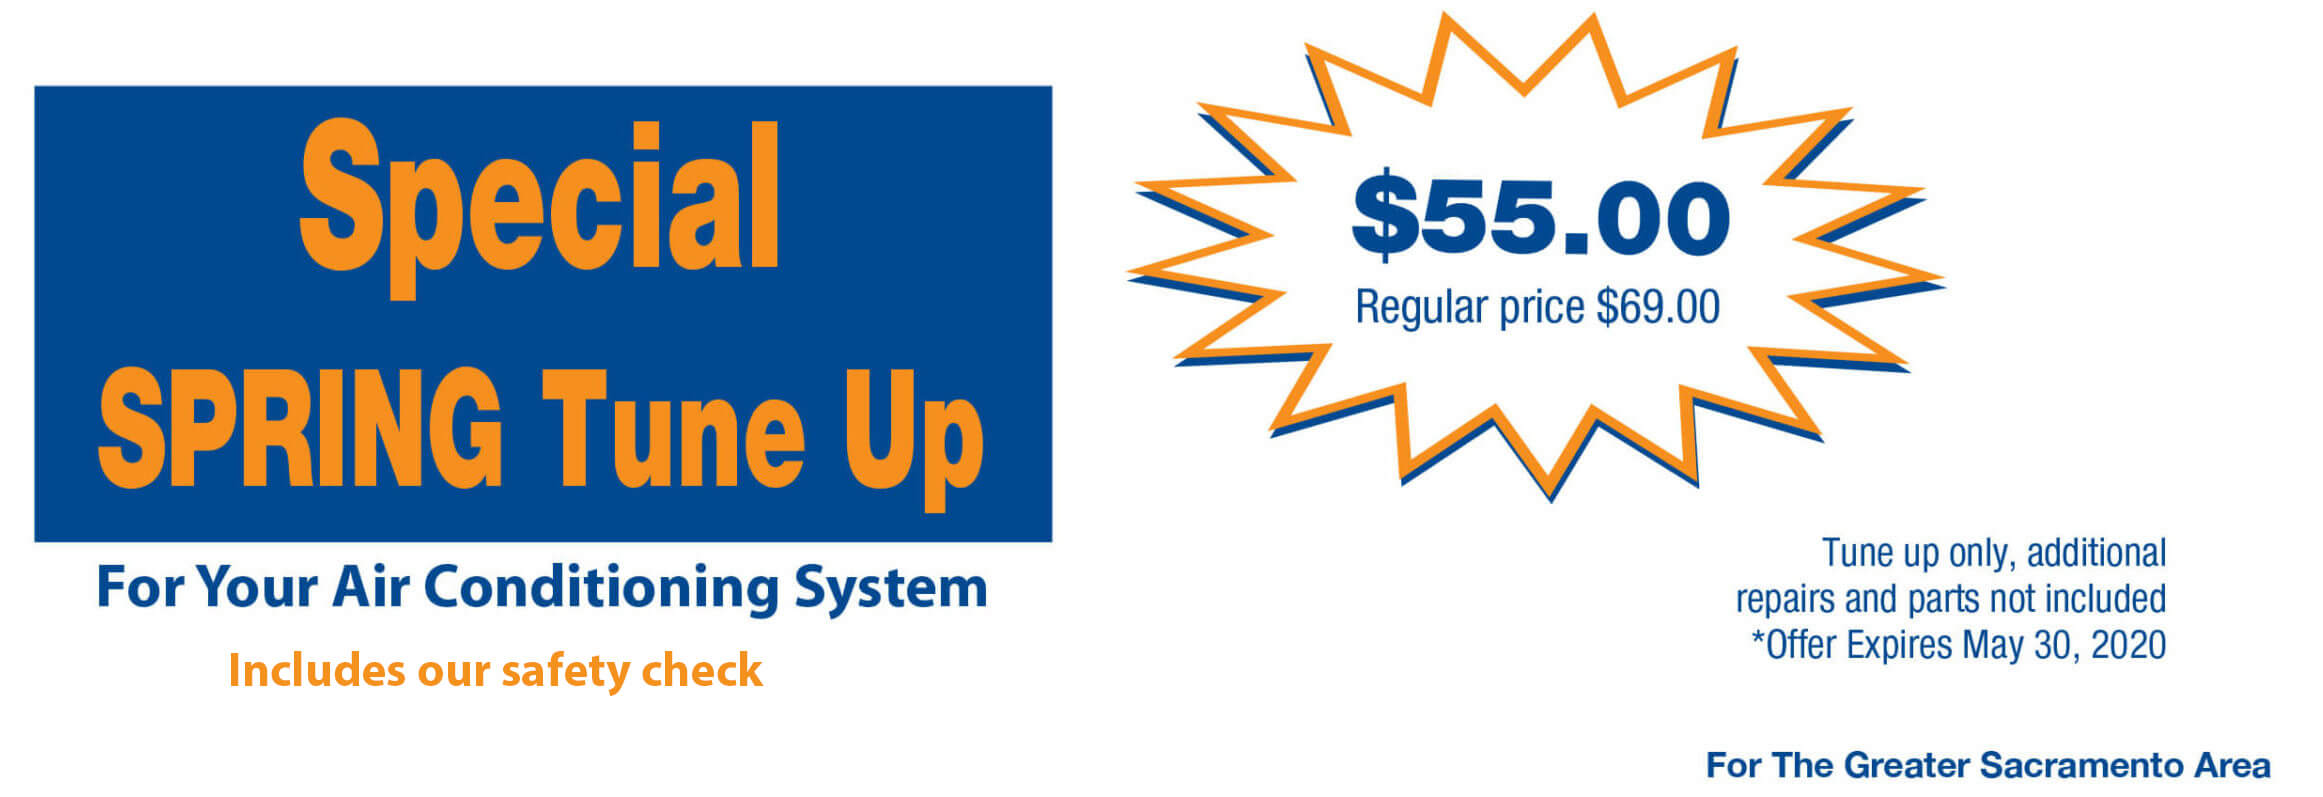 Affordable Heating Air Specials 1 Scaled E1586204634889